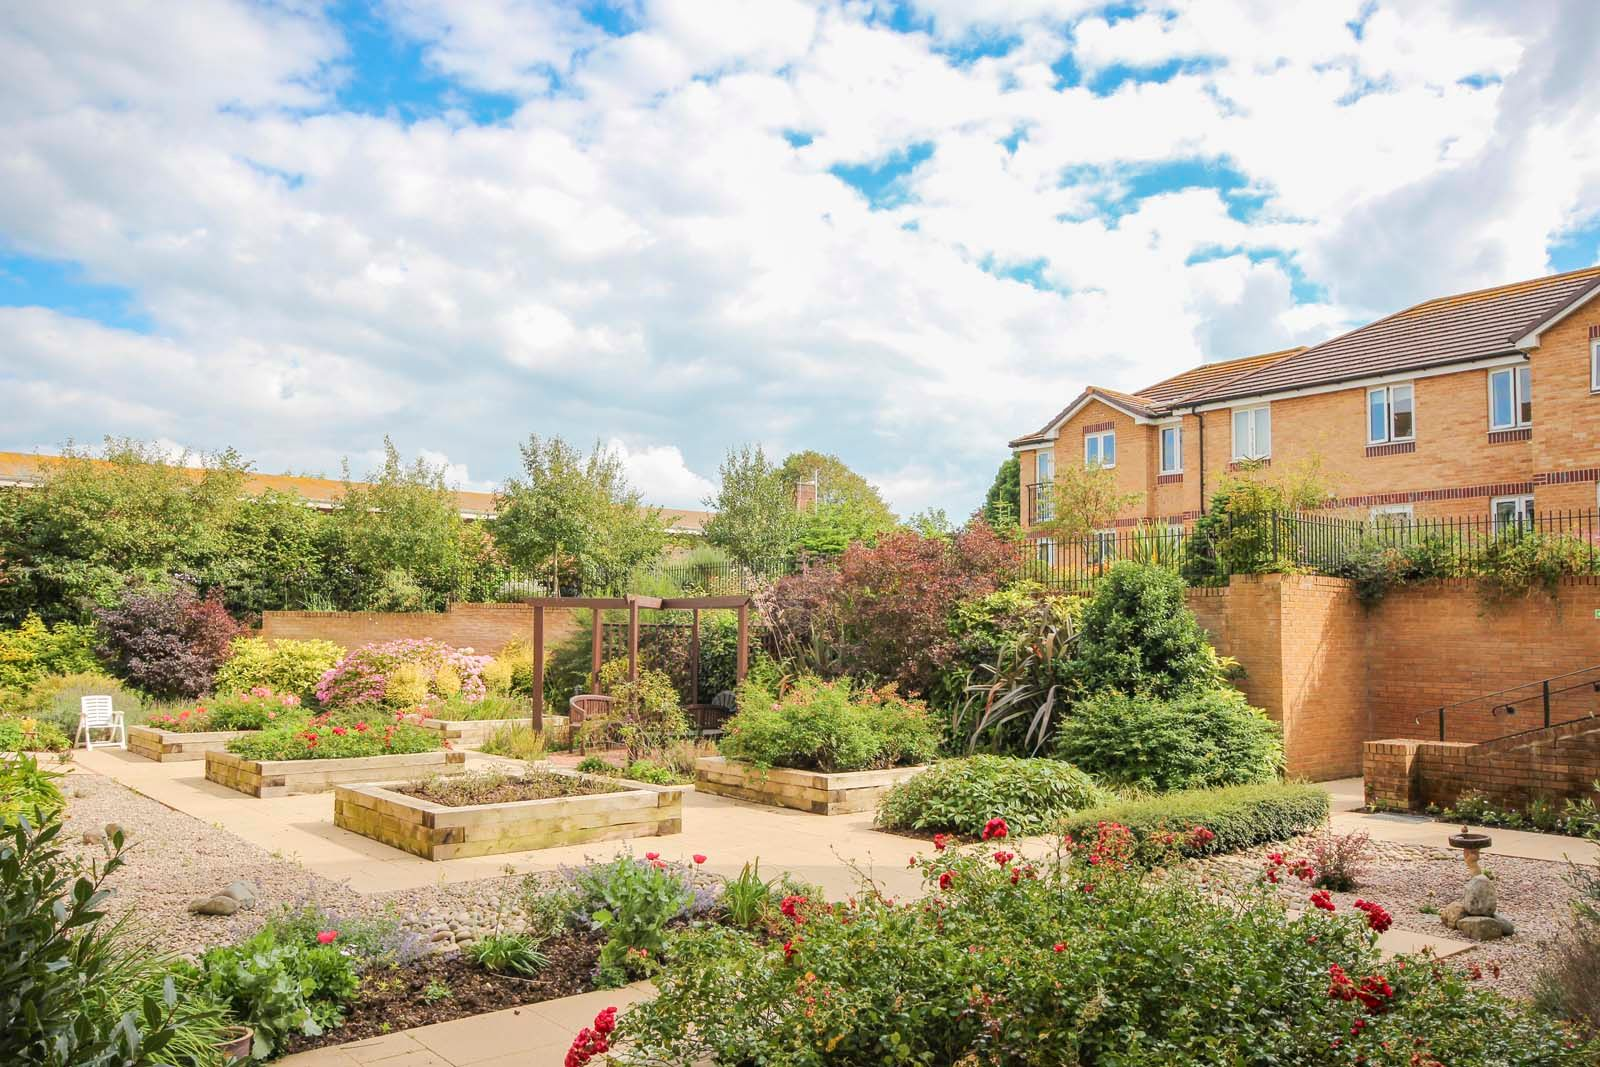 1 bed  for sale in Worthing Road - Property Image 1